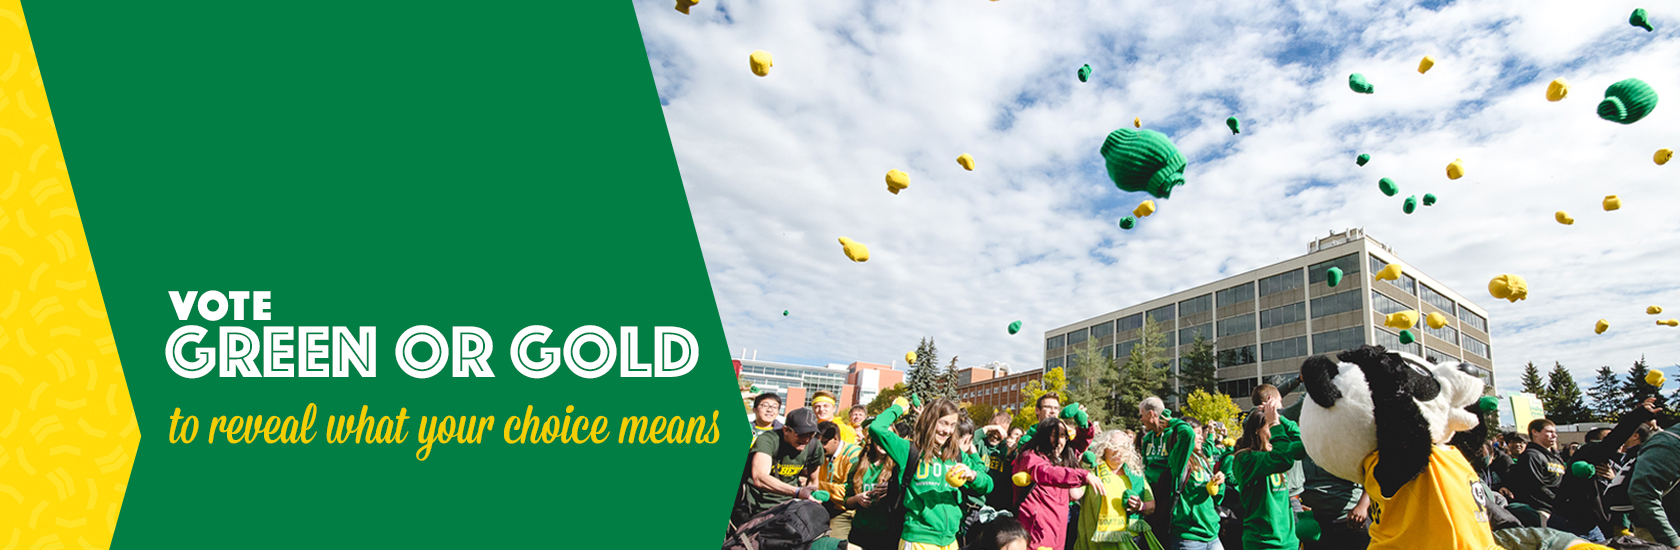 Vote Green or Gold to reveal what your choice means